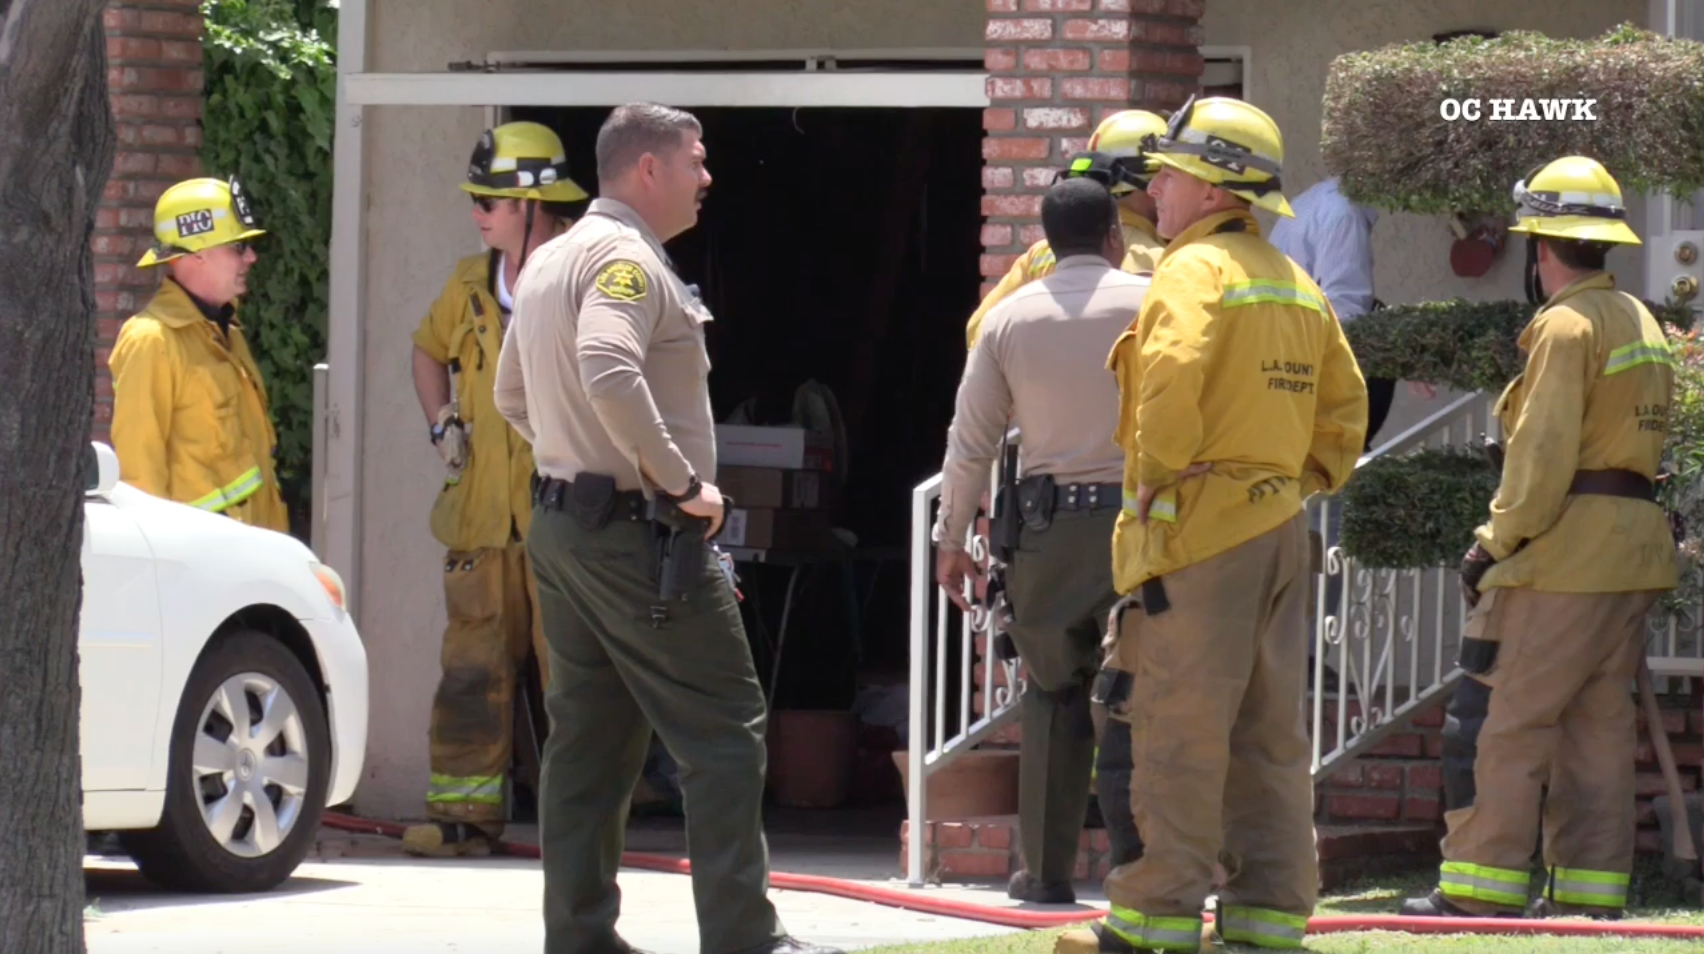 Authorities investigate a Lakewood home where a man died in a fire on June 4, 2019. (Credit: OC Hawk)